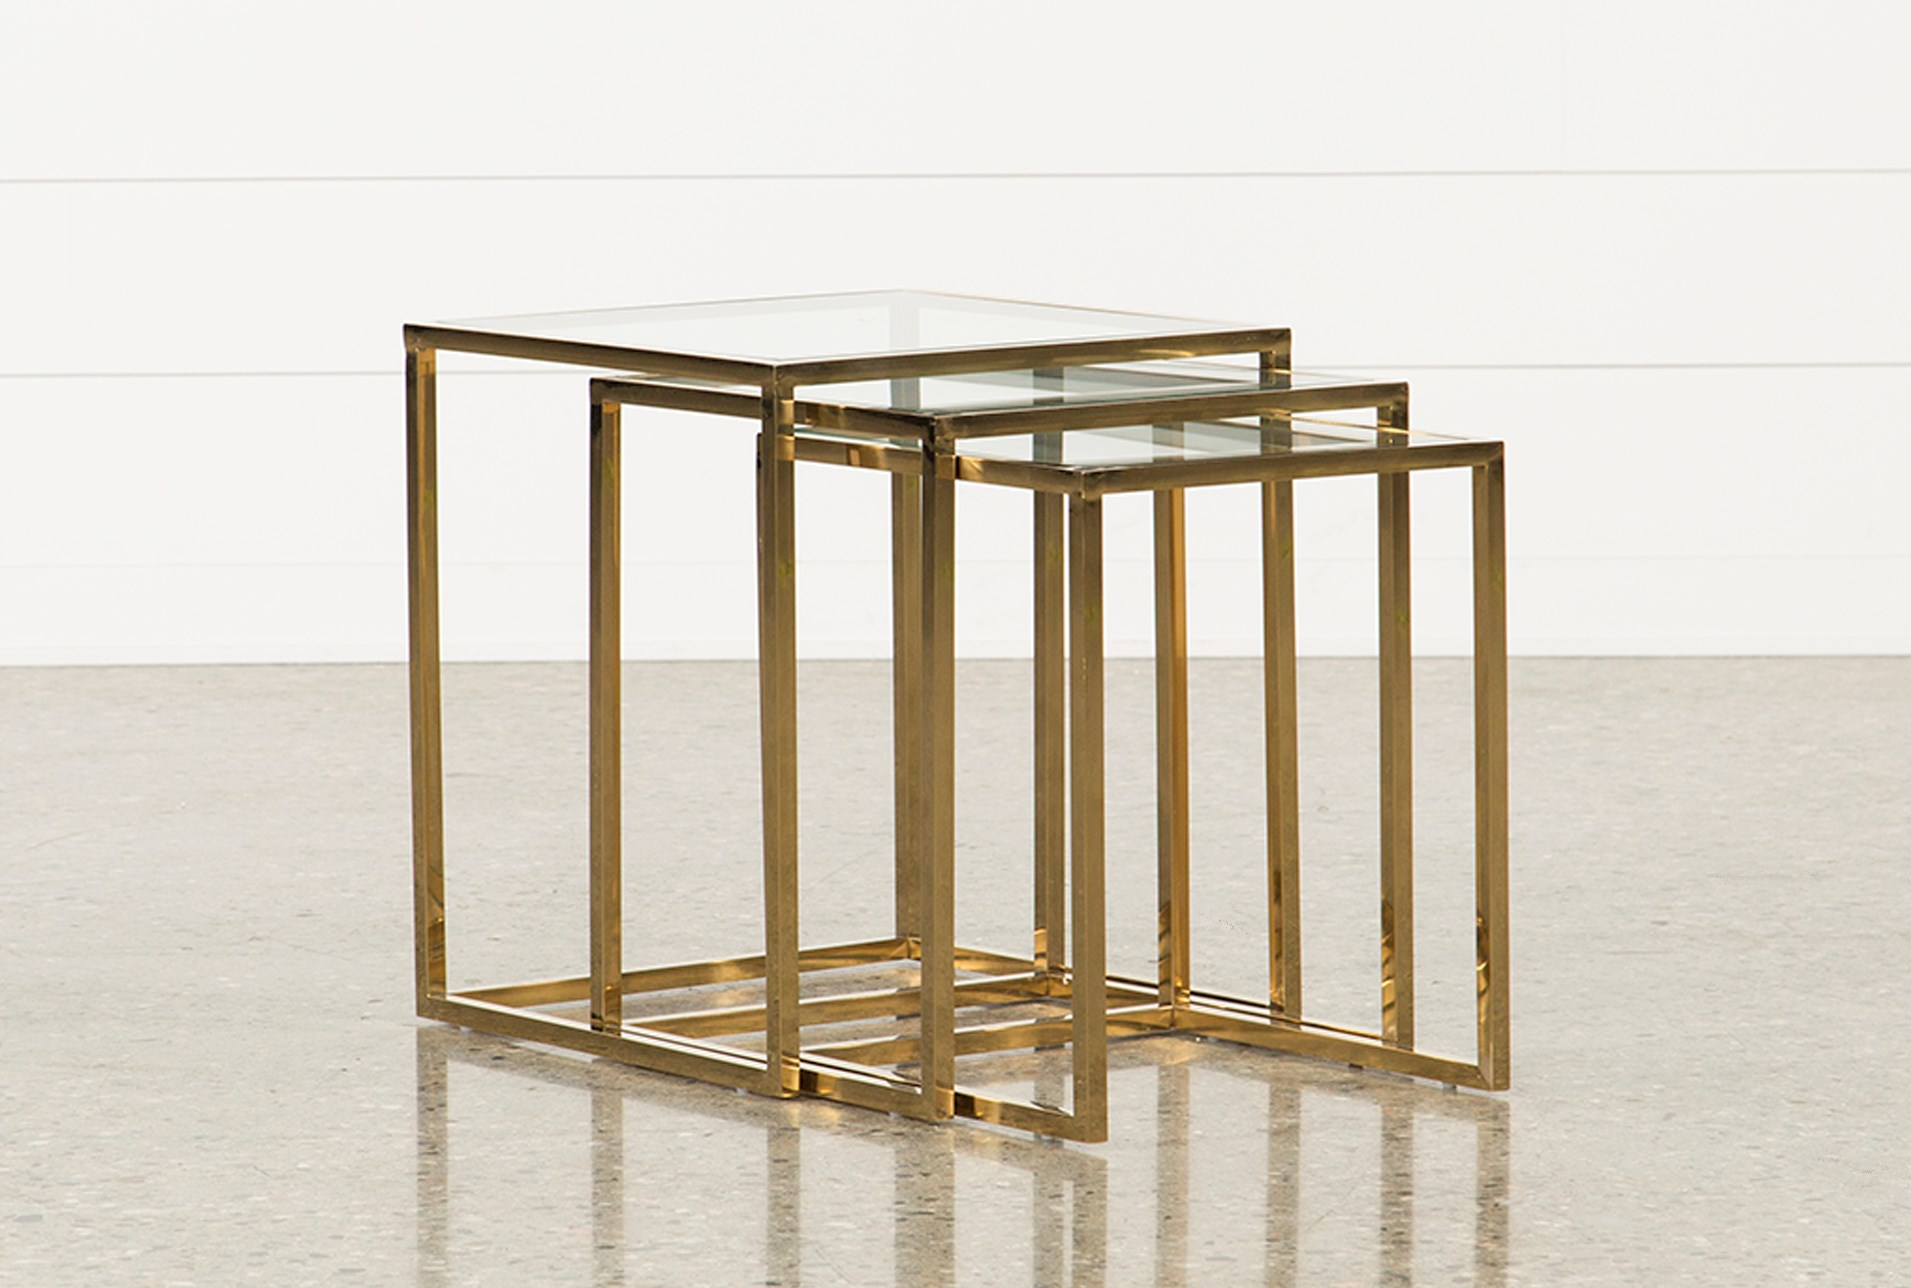 nesting tables. added to cart. calins 3 piece nesting tables